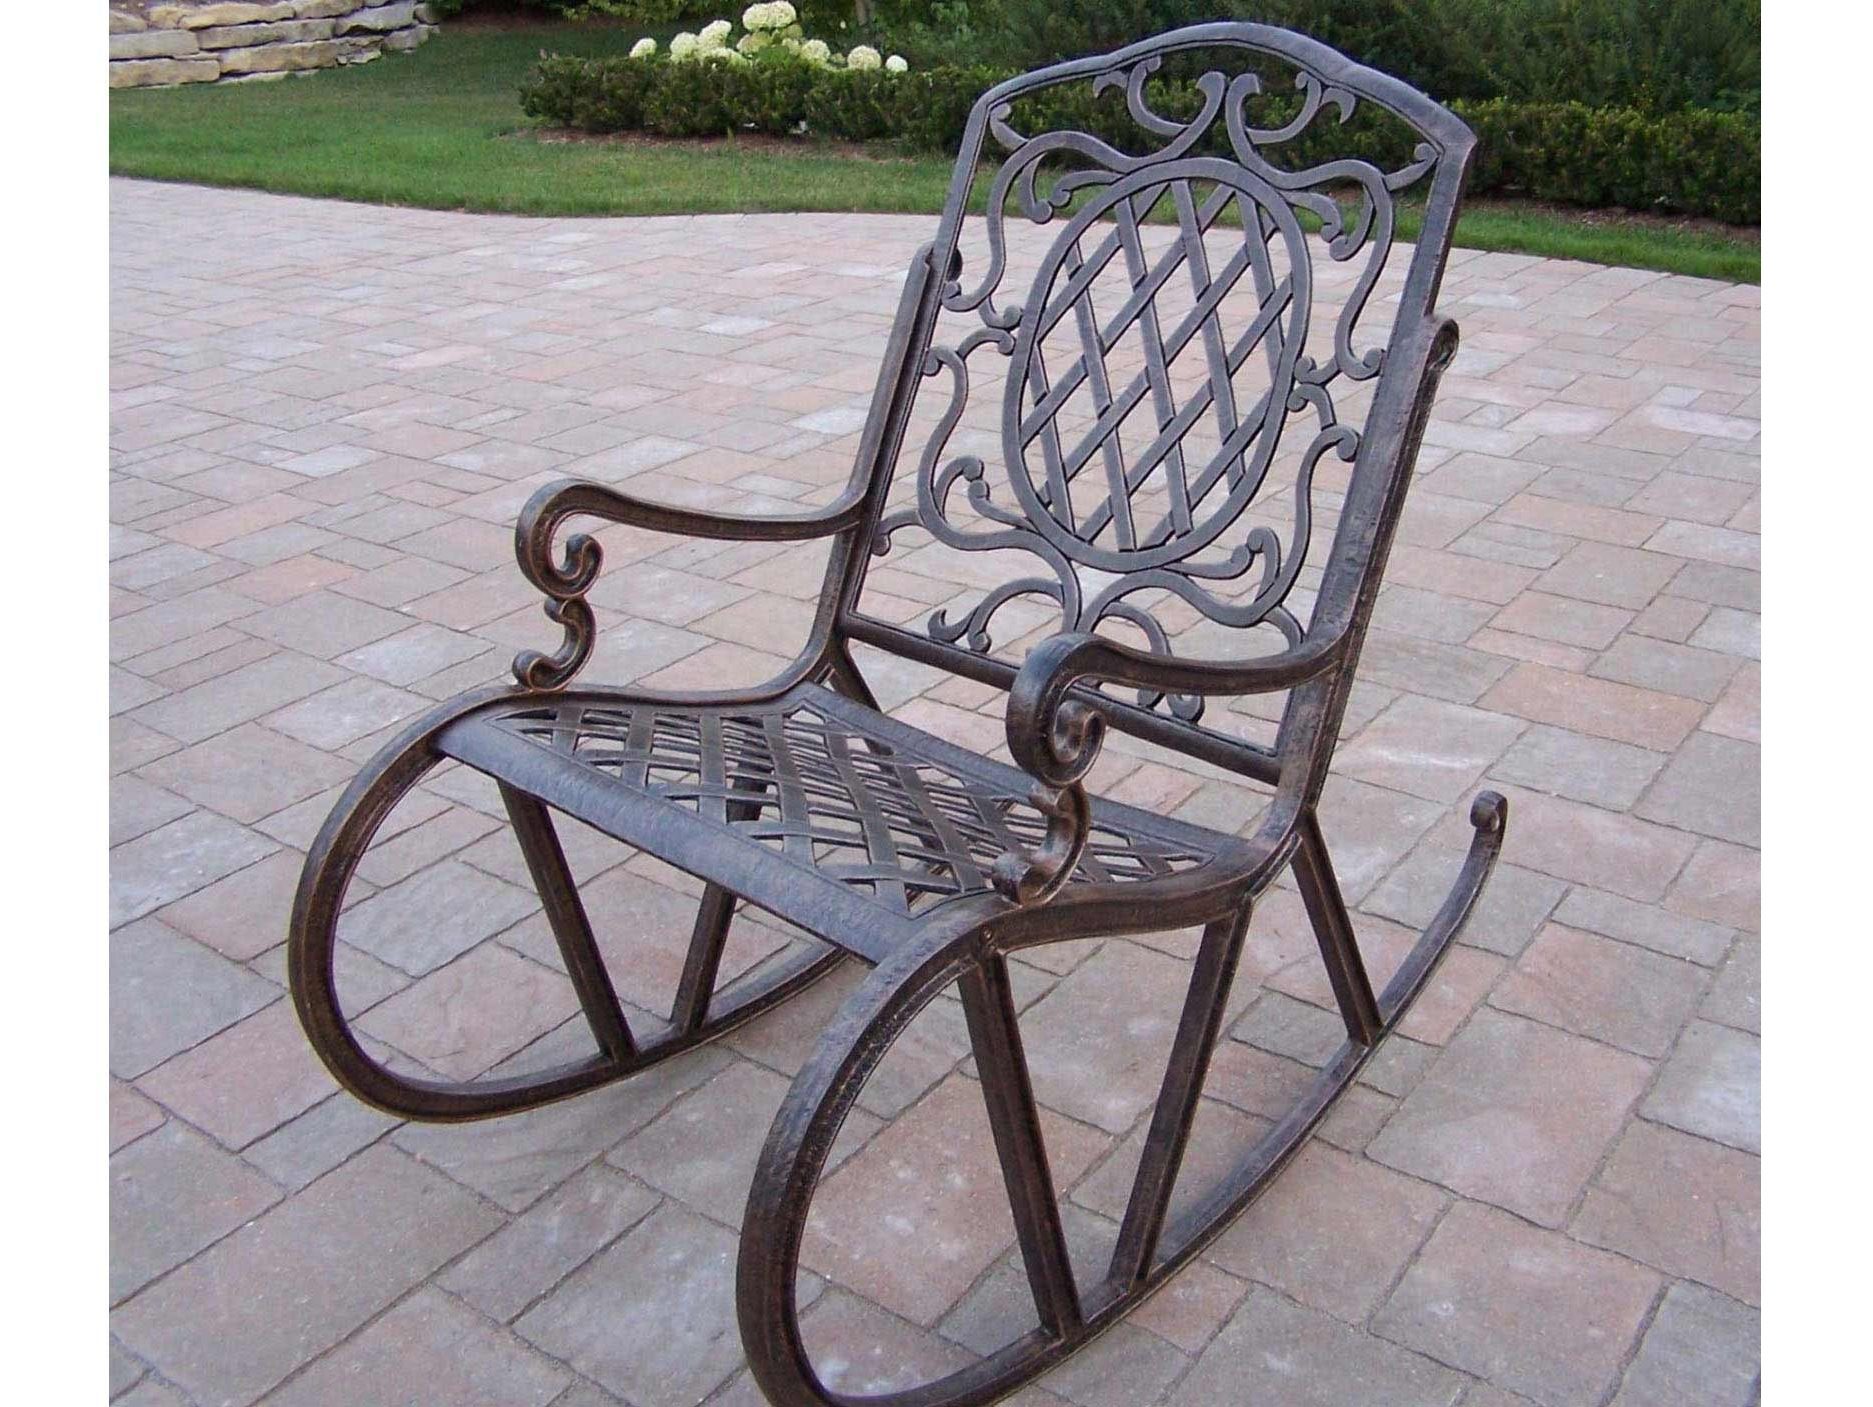 Wrought Iron Rocking Patio Furniture Chairs And Carved — The Home With Regard To Popular Iron Rocking Patio Chairs (View 15 of 15)